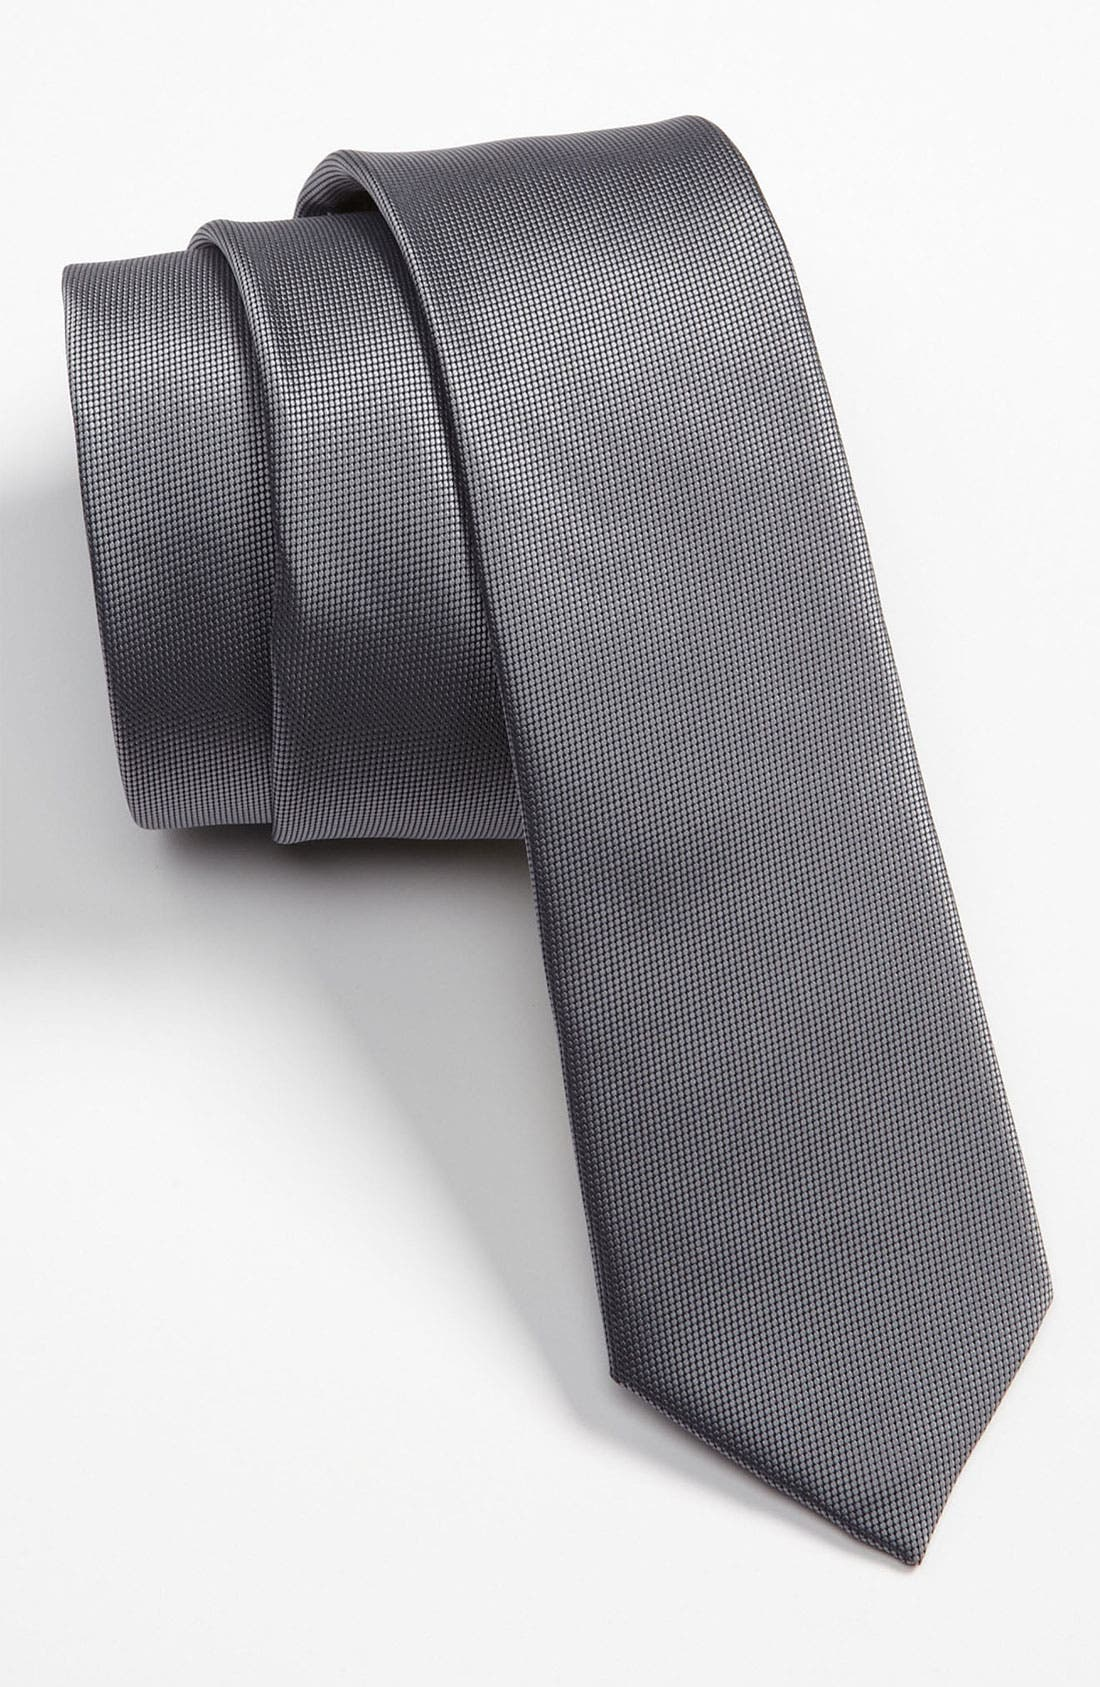 Alternate Image 1 Selected - Topman Narrow Textured Tie